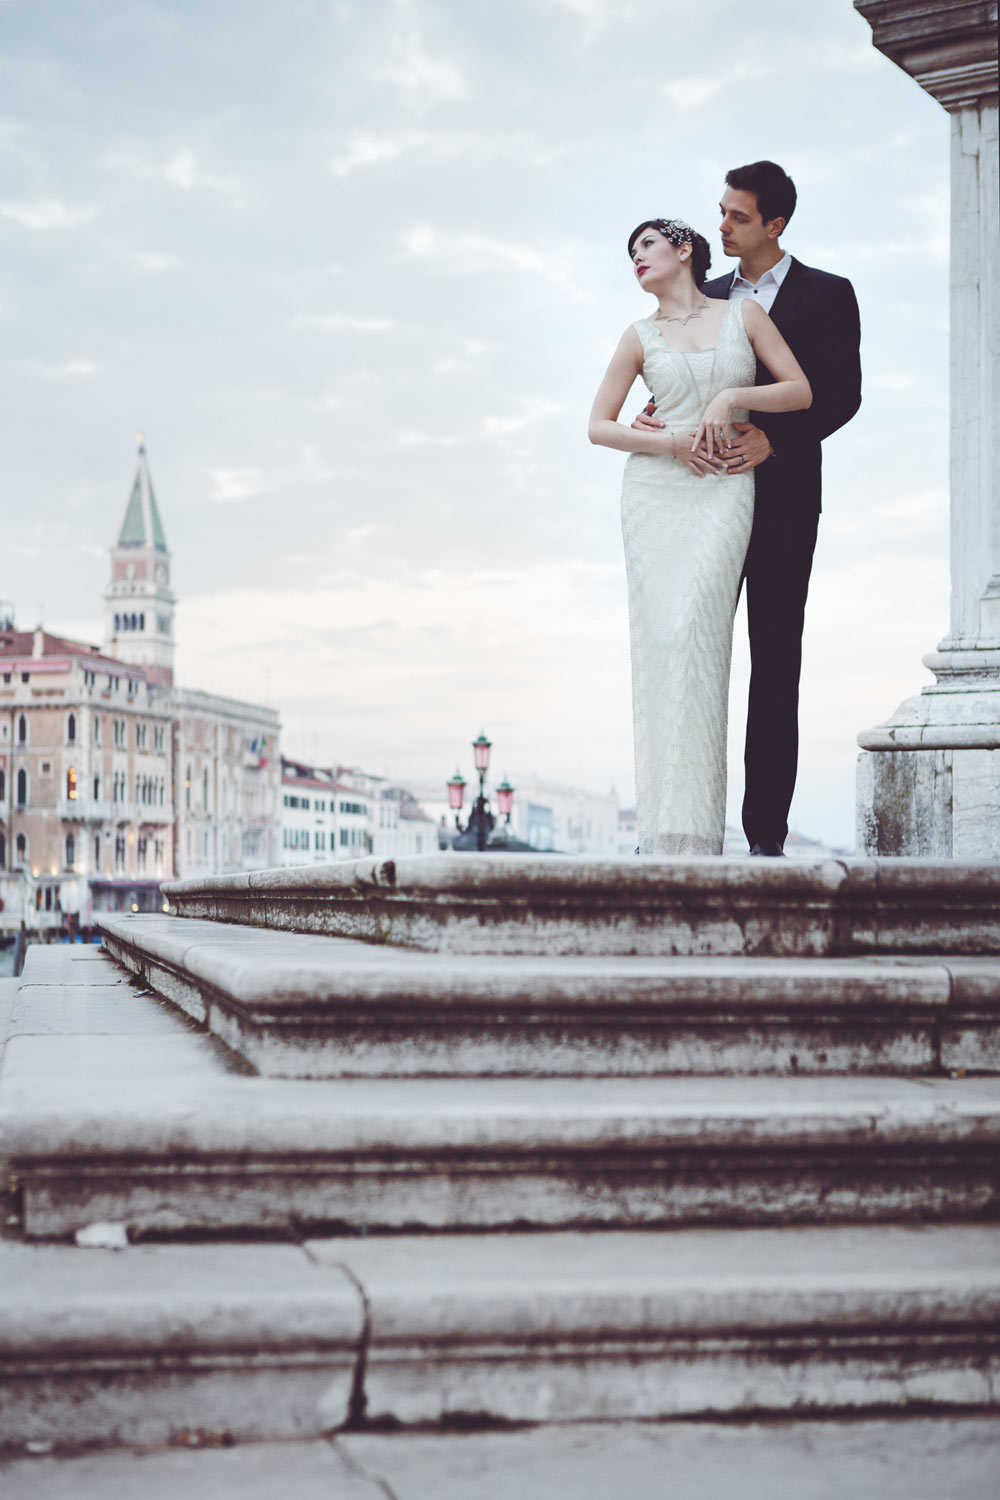 Romantic Moment in Venice